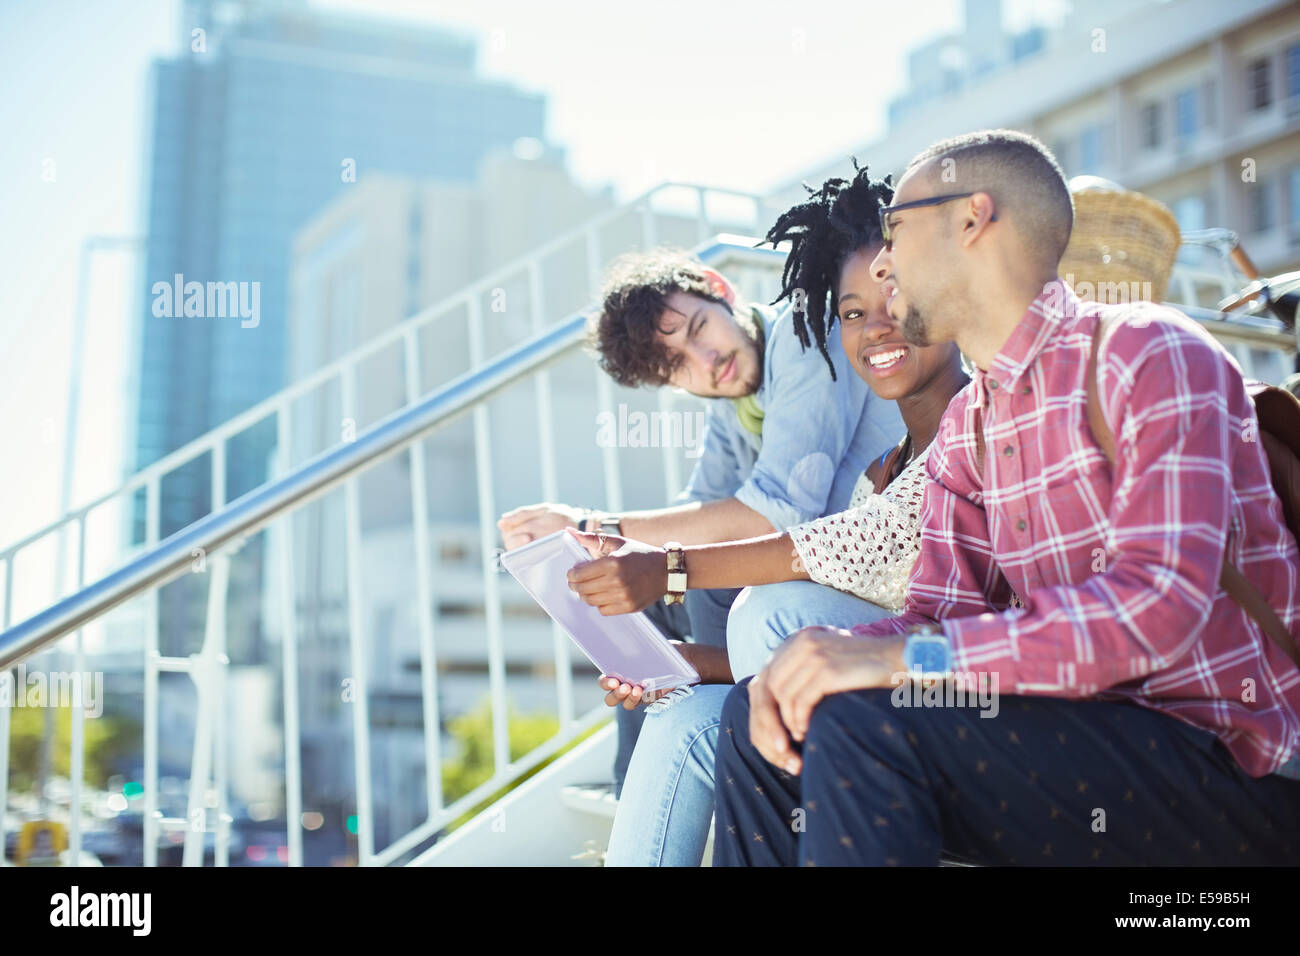 Friends sitting on city steps - Stock Image